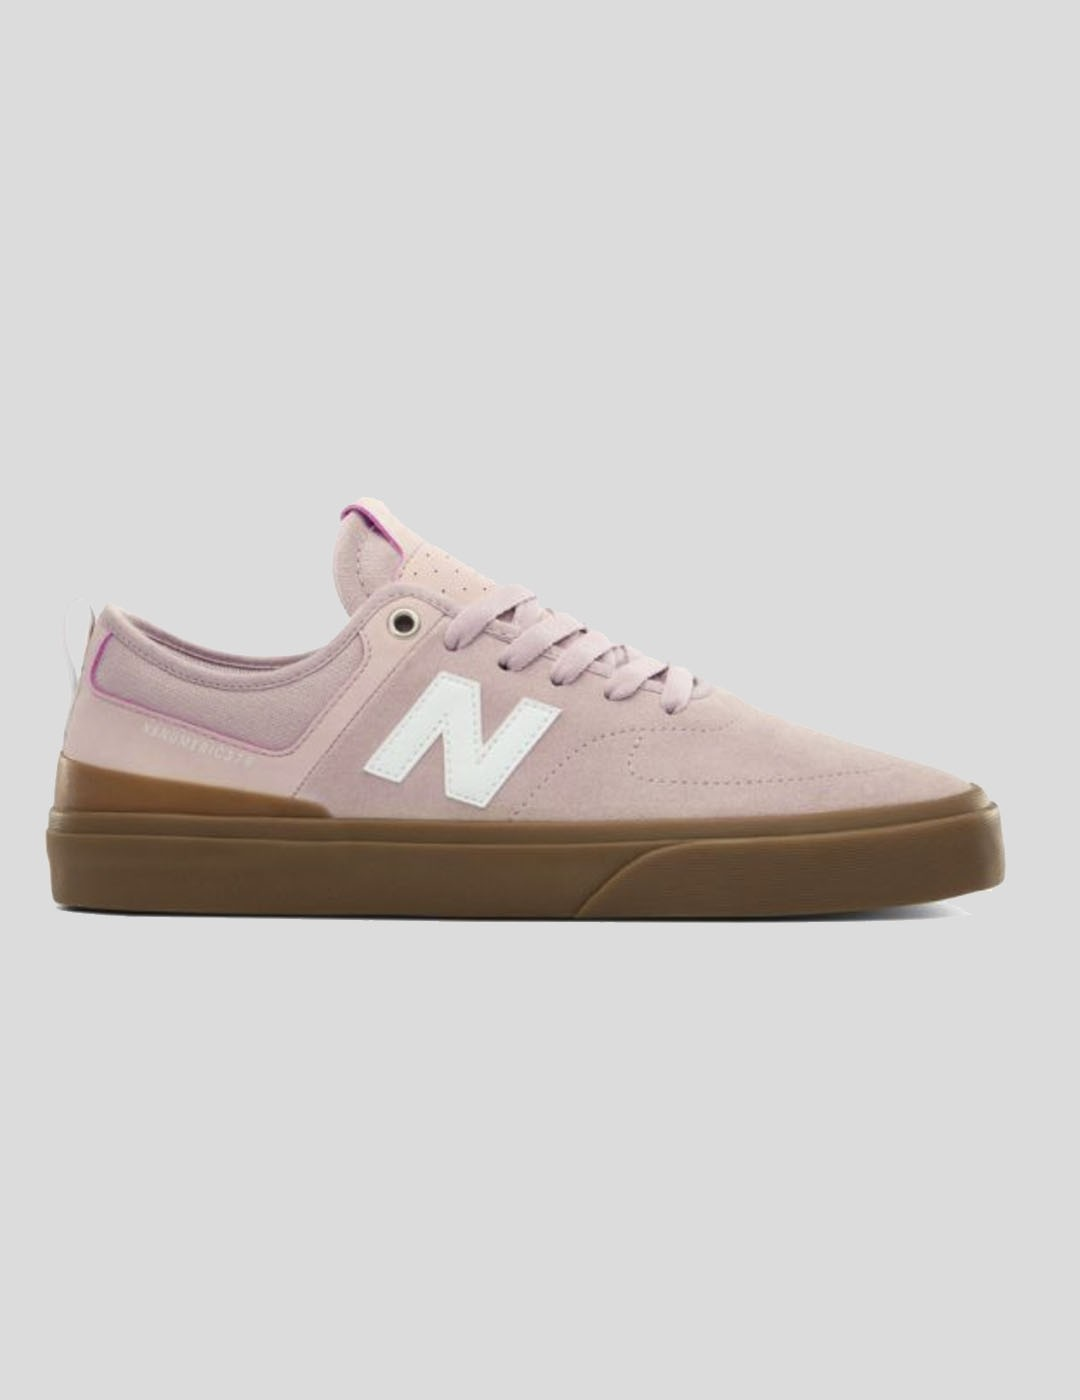 ZAPATILLAS NEW BALANCE NUMERIC 379 PINK WITH GUM